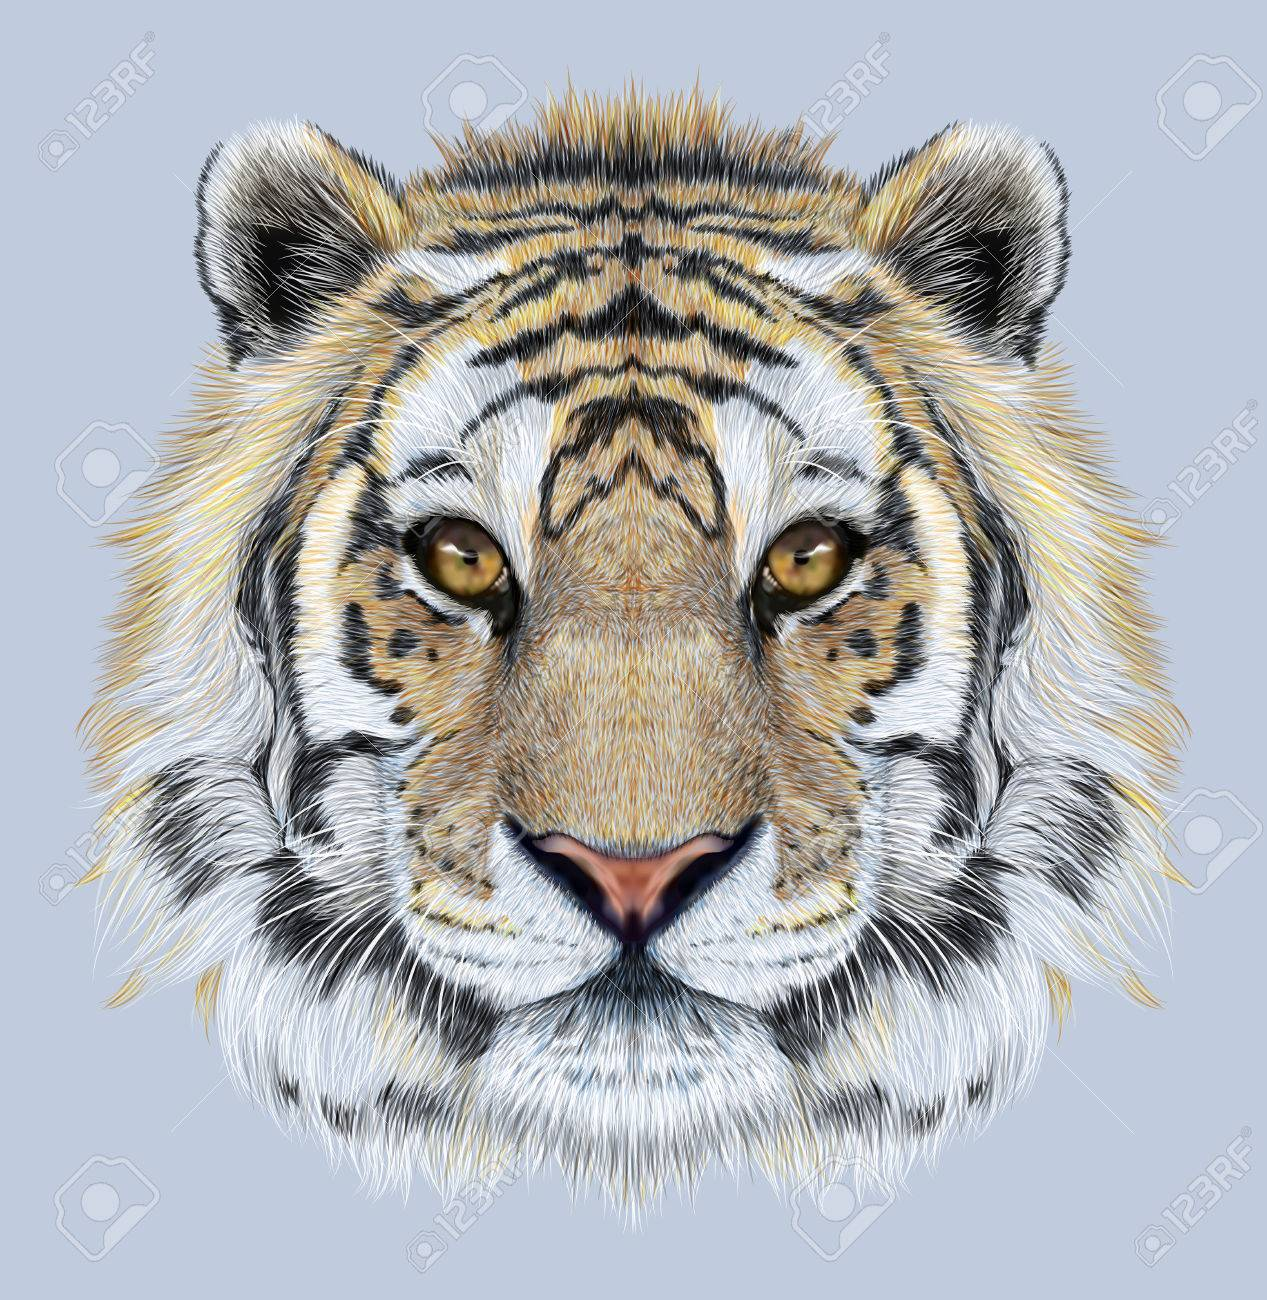 portrait of a tiger on blue background. beautiful face of big